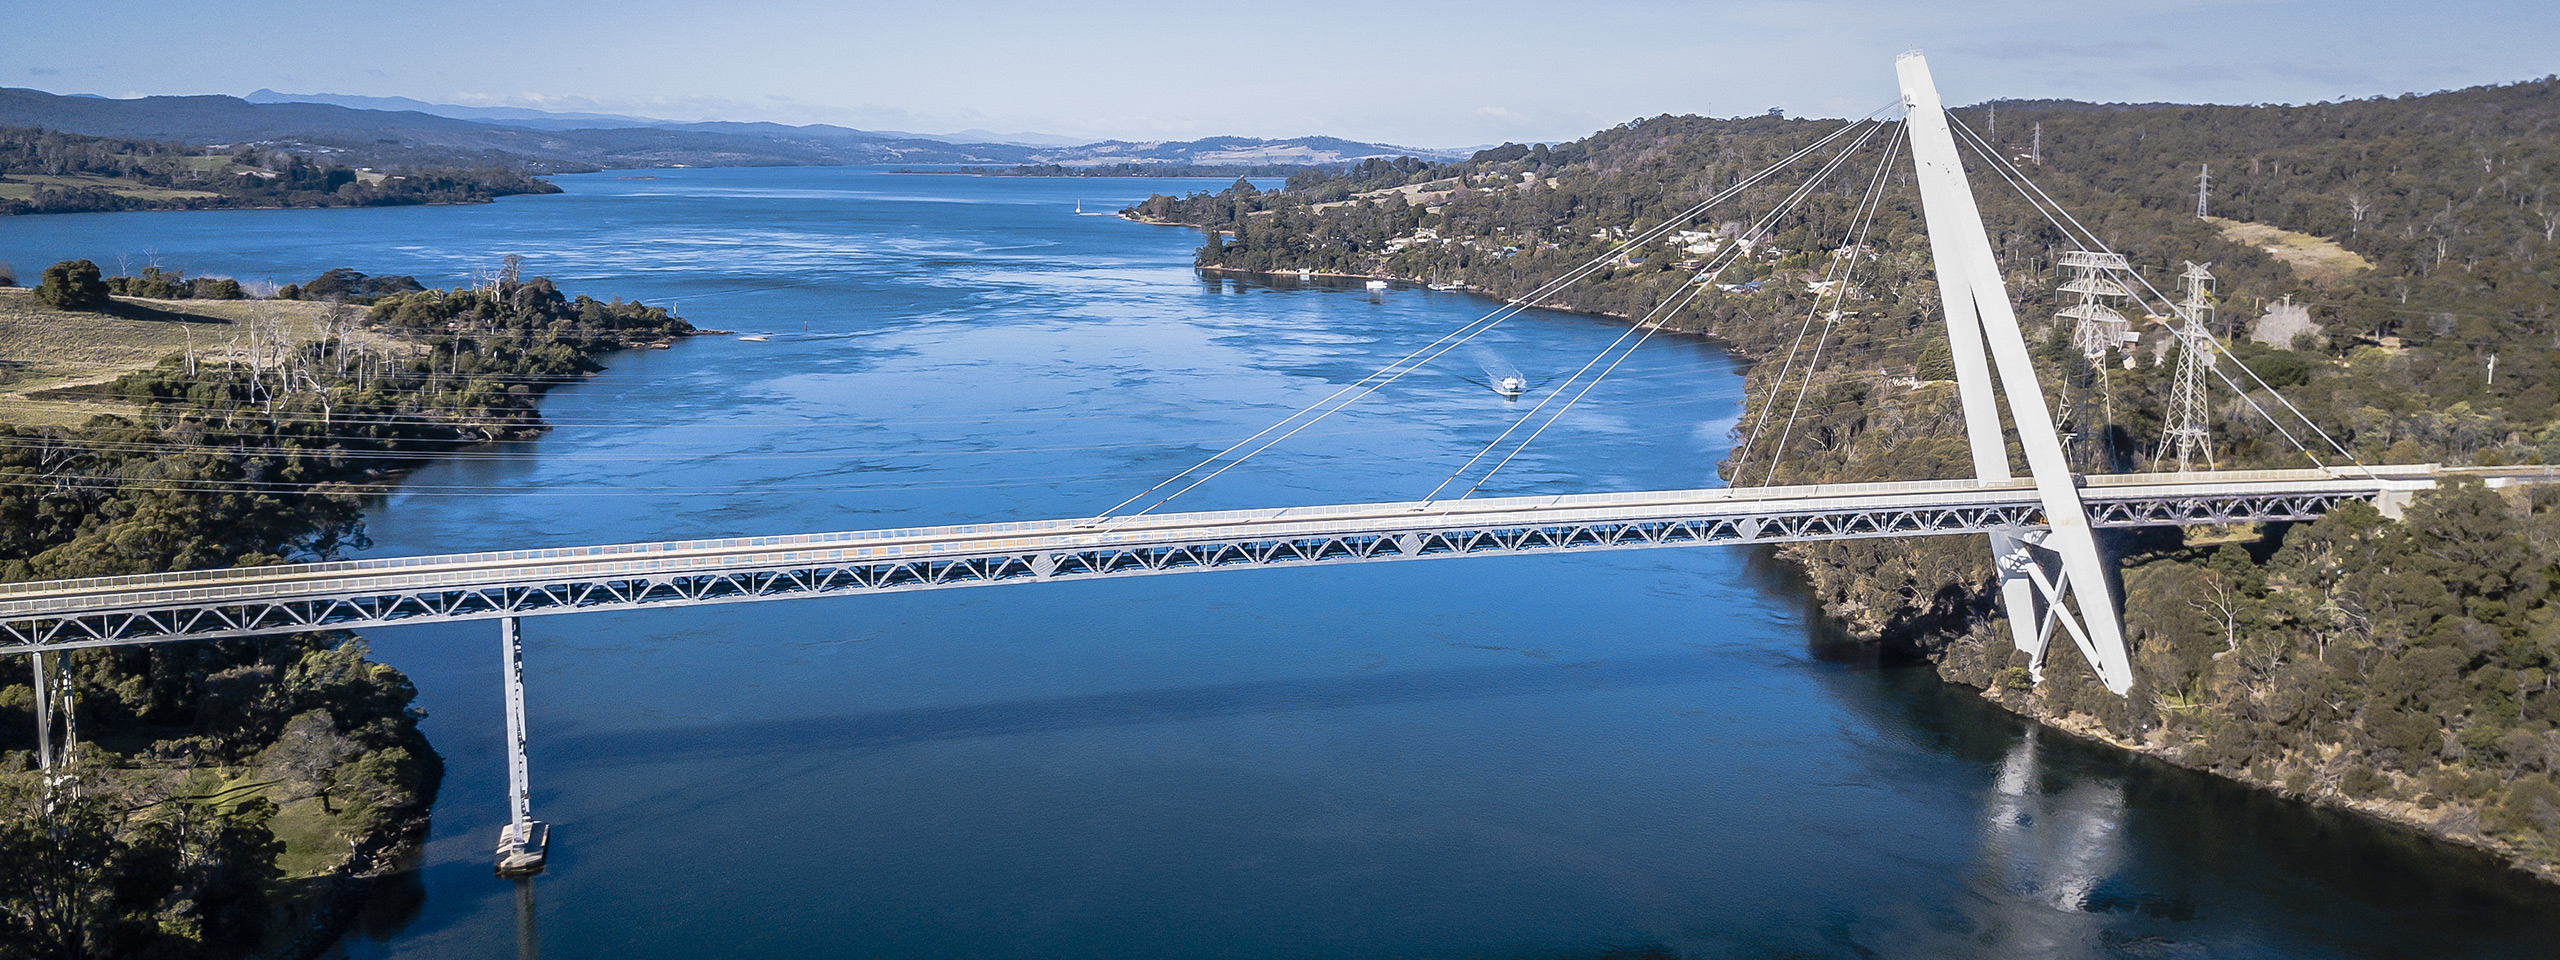 Batman Bridge & Tamar River, Launceston